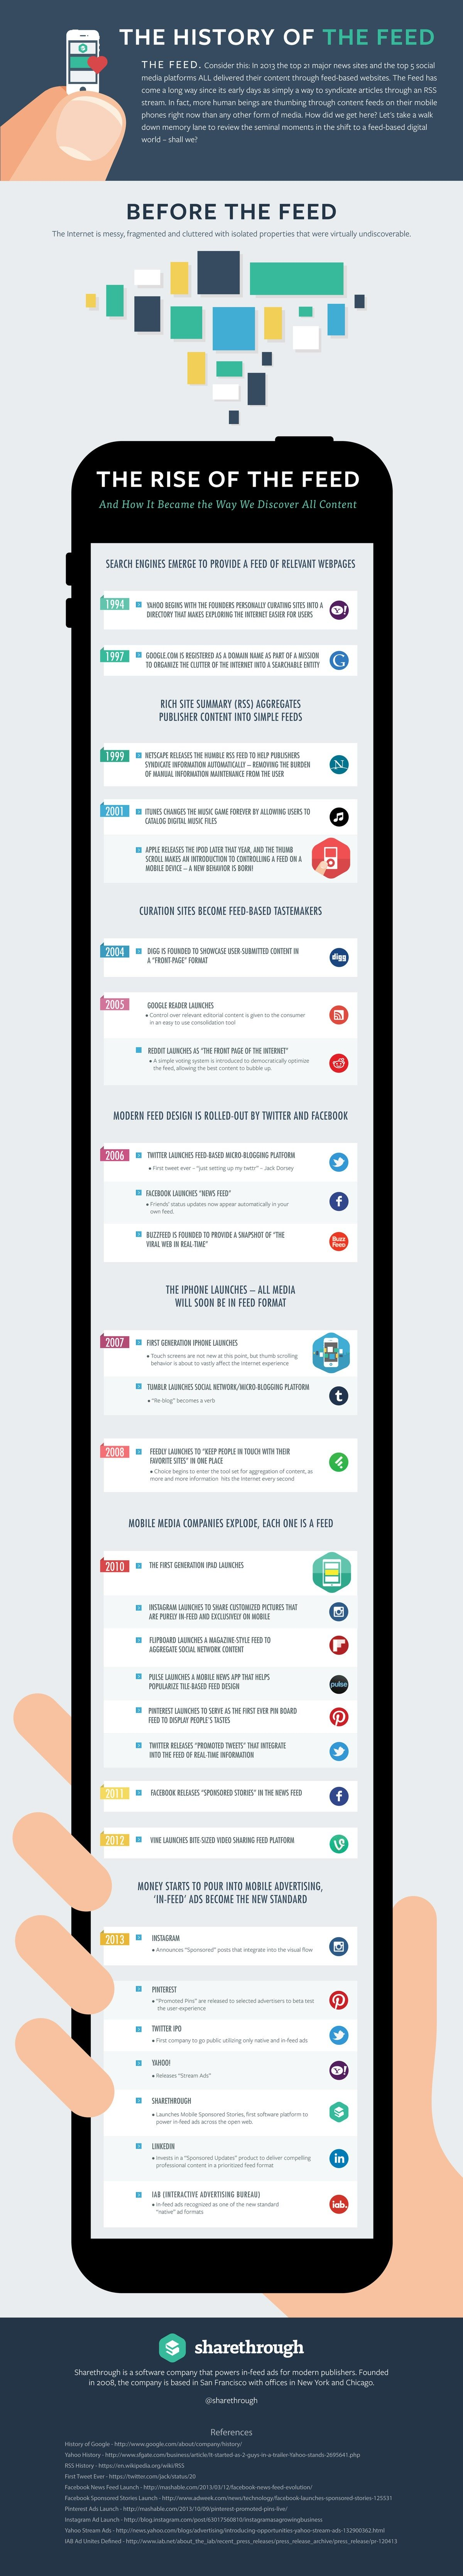 The History and Future of the Feed [Infographic]